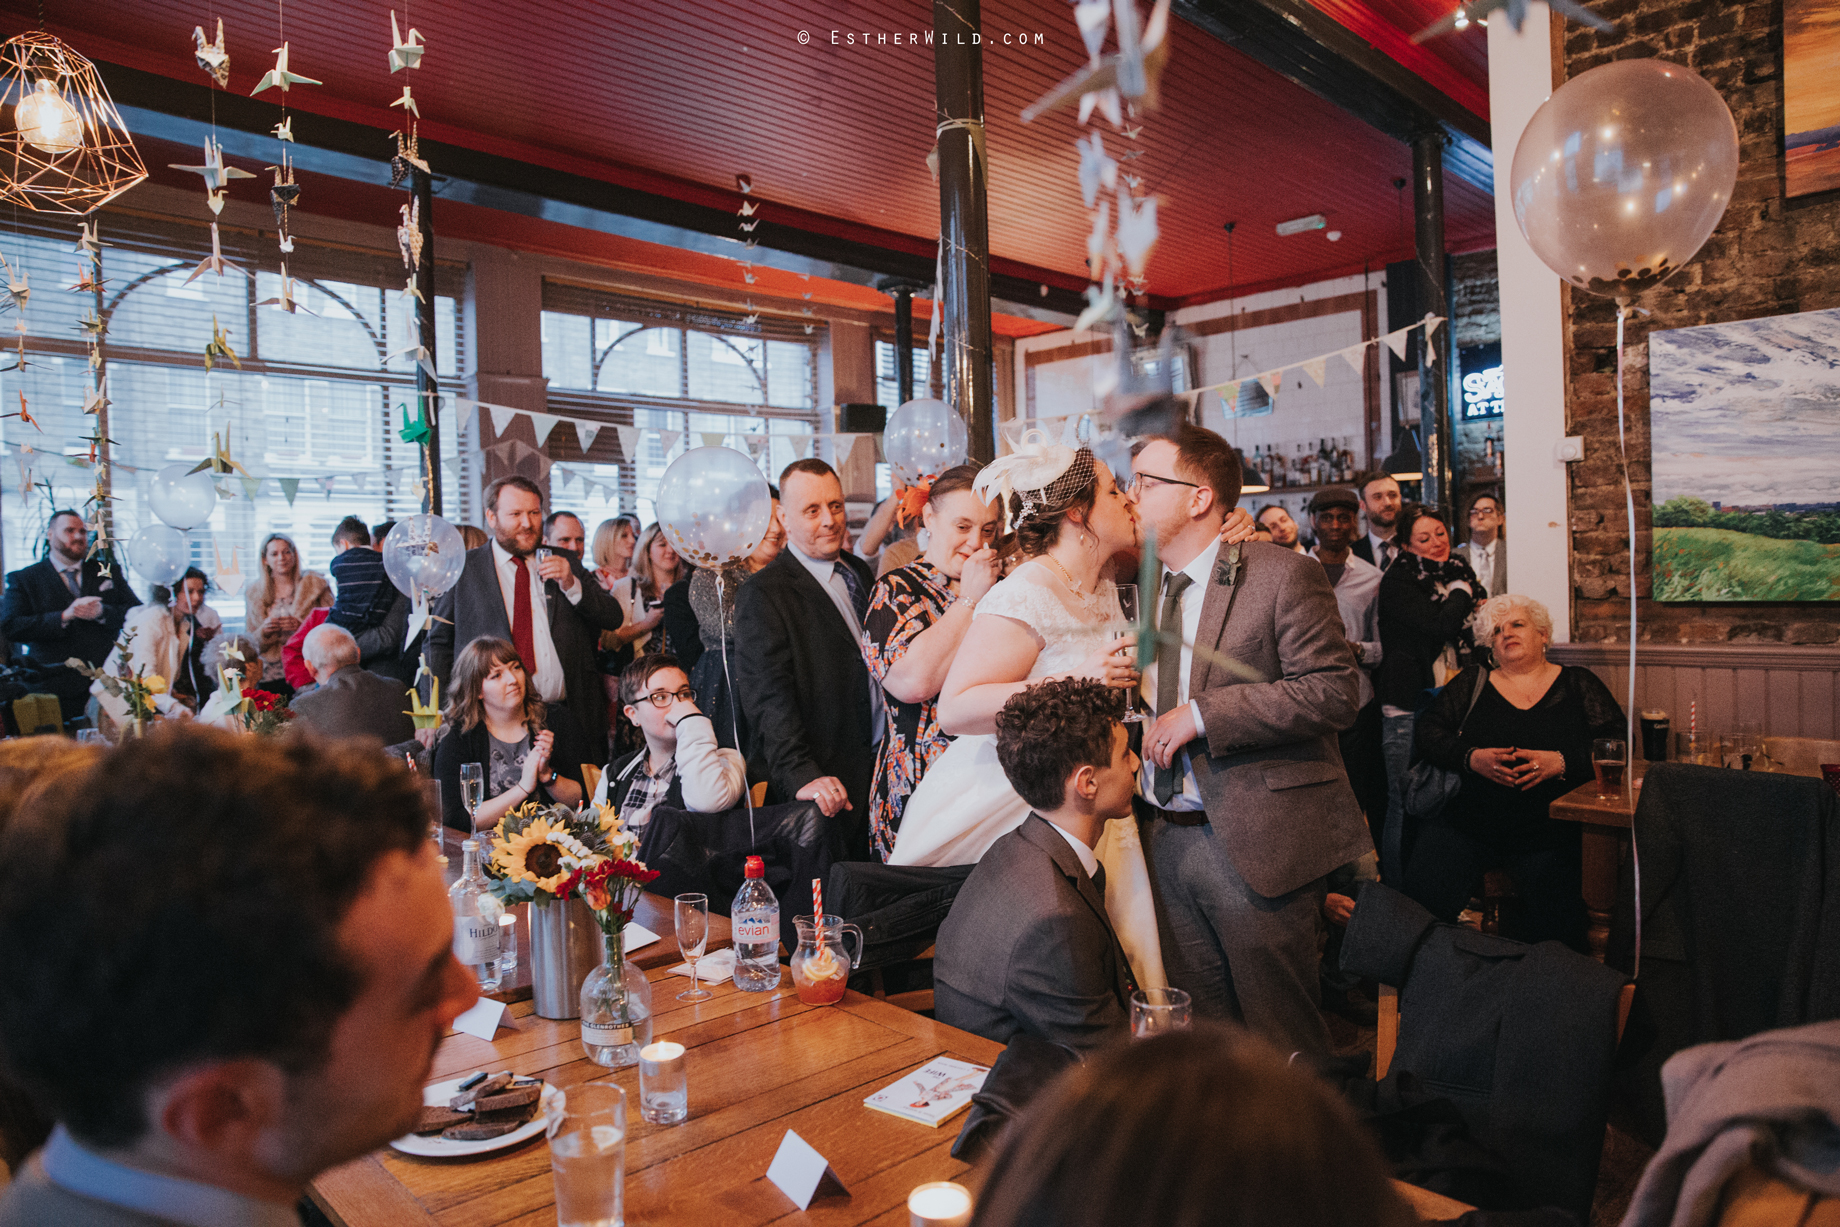 Islington_Town_Hall_Assembly_Hall_Council_Chamber_The_Star_Pub_London_Sacred_Wedding_Copyright_Esther_Wild_Photographer_IMG_1742.jpg